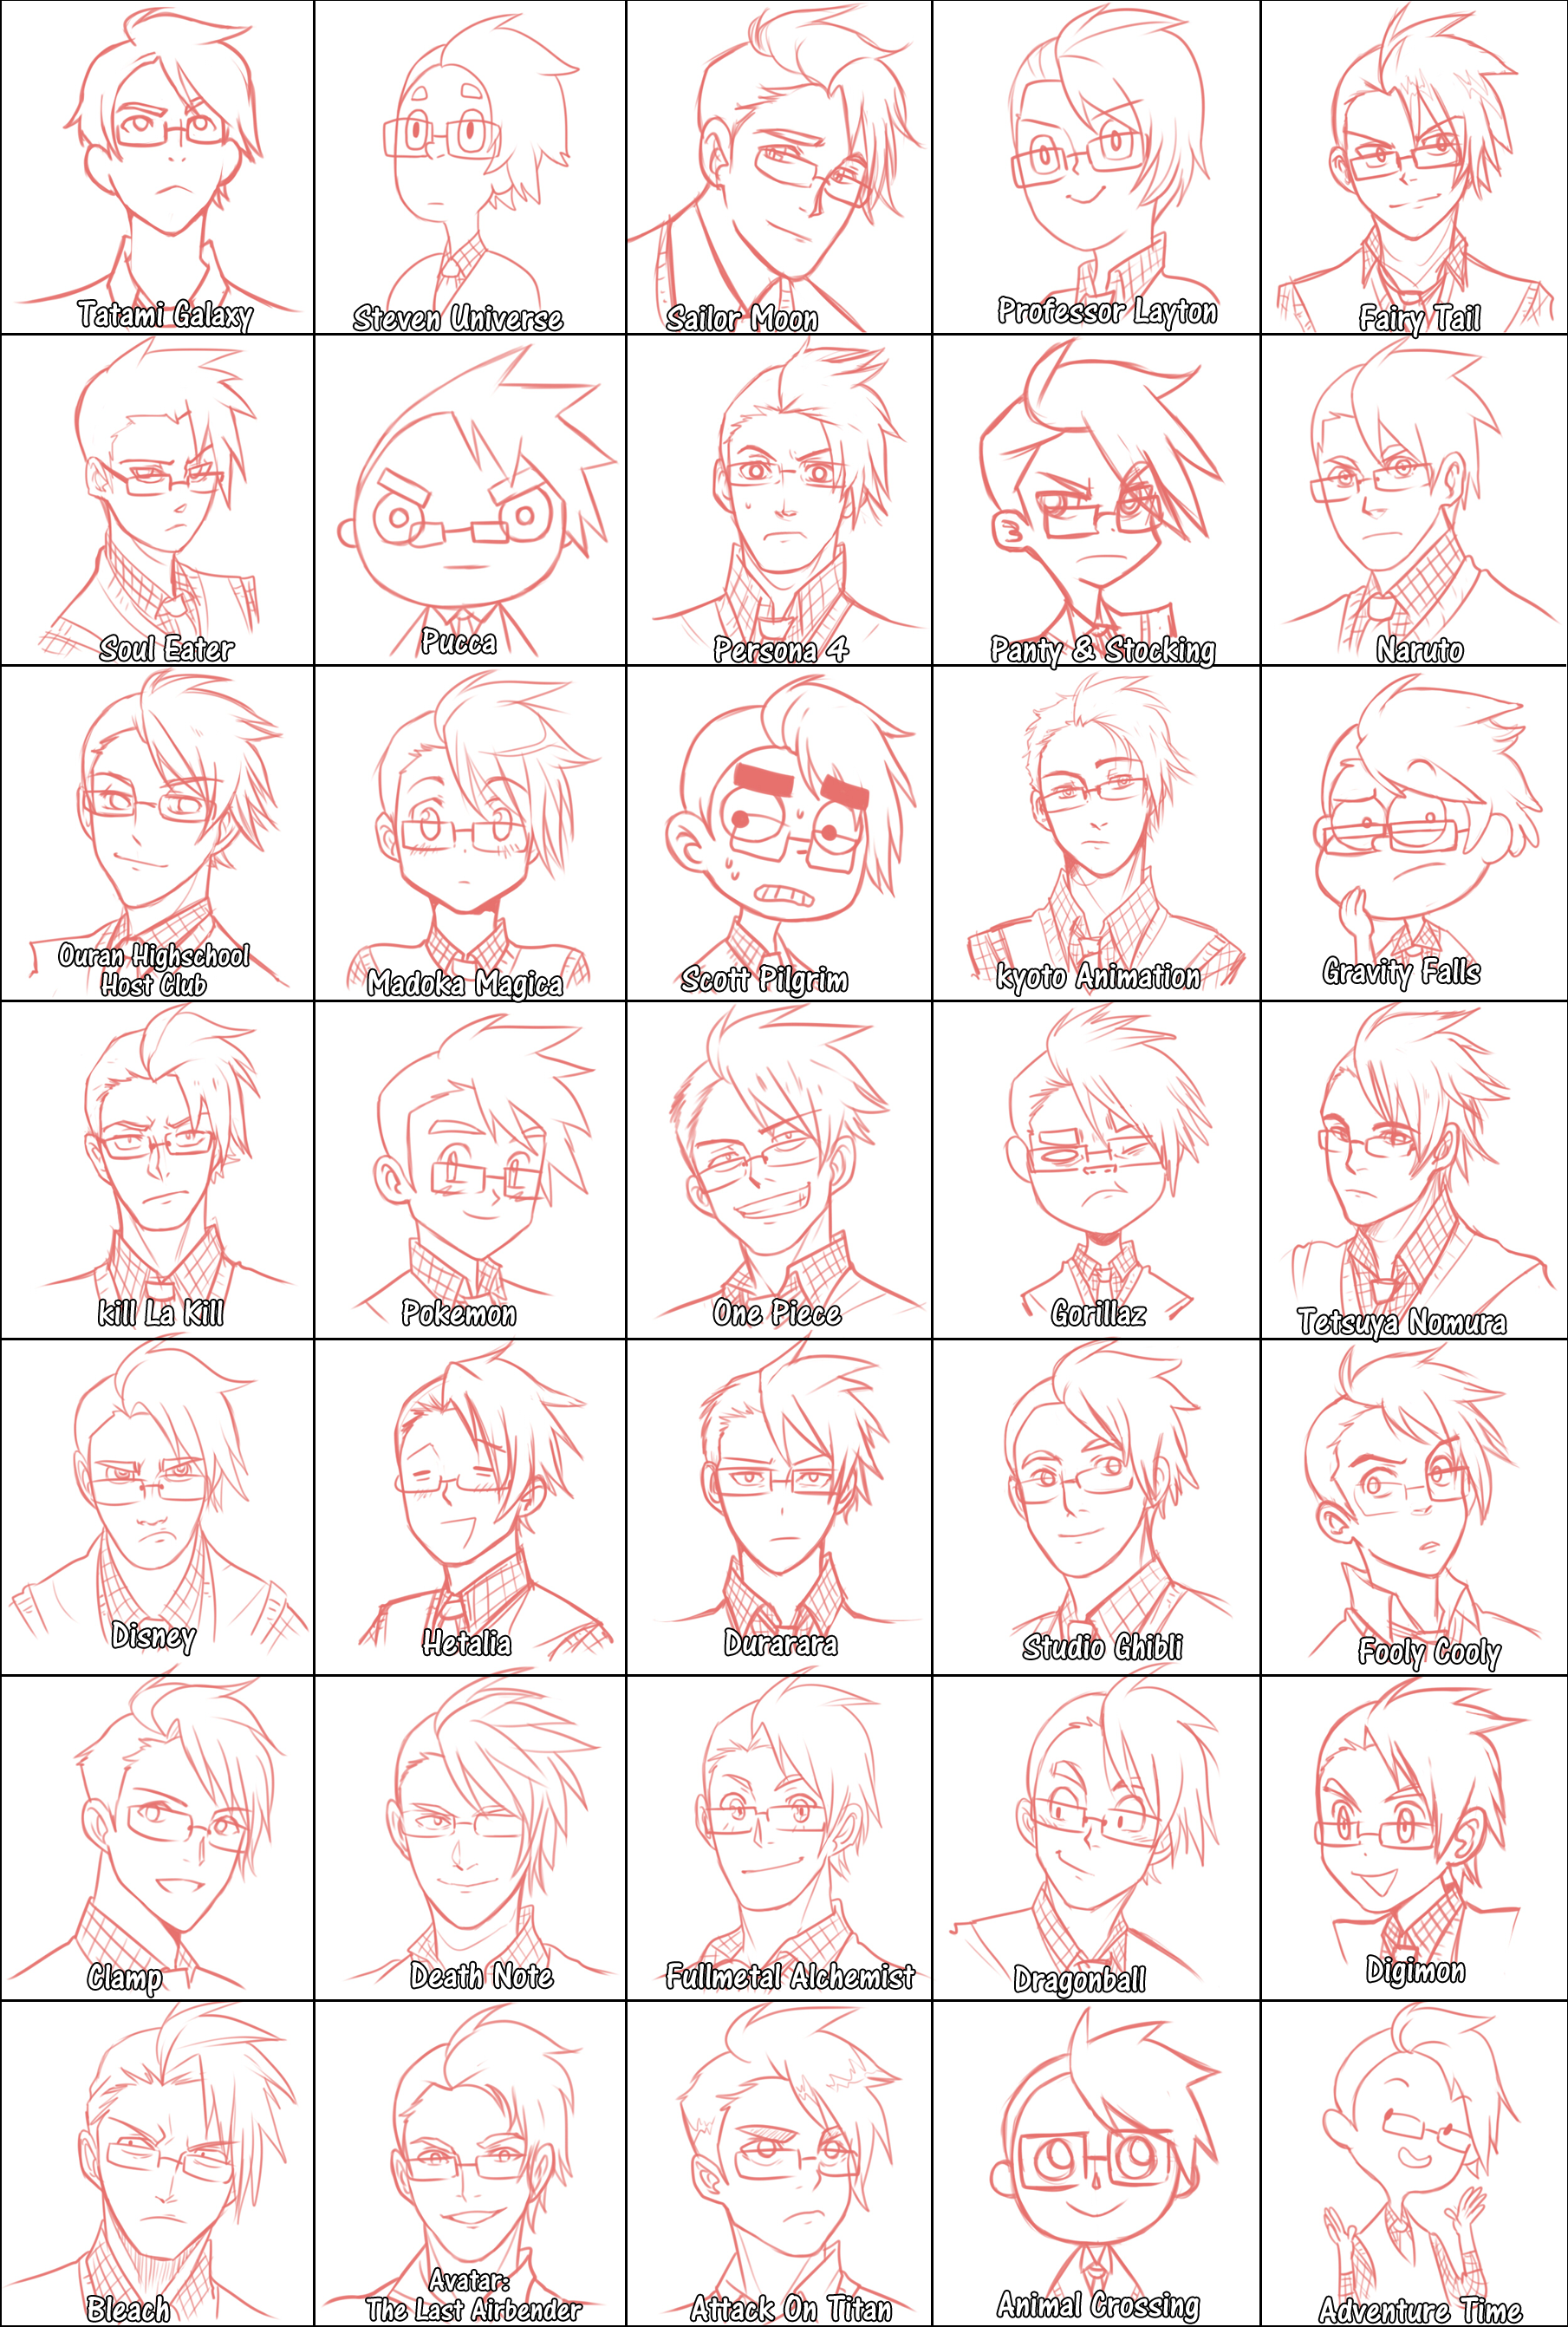 Draw Yourself Style Meme Different Drawing Styles Anime Drawing Styles Art Style Challenge